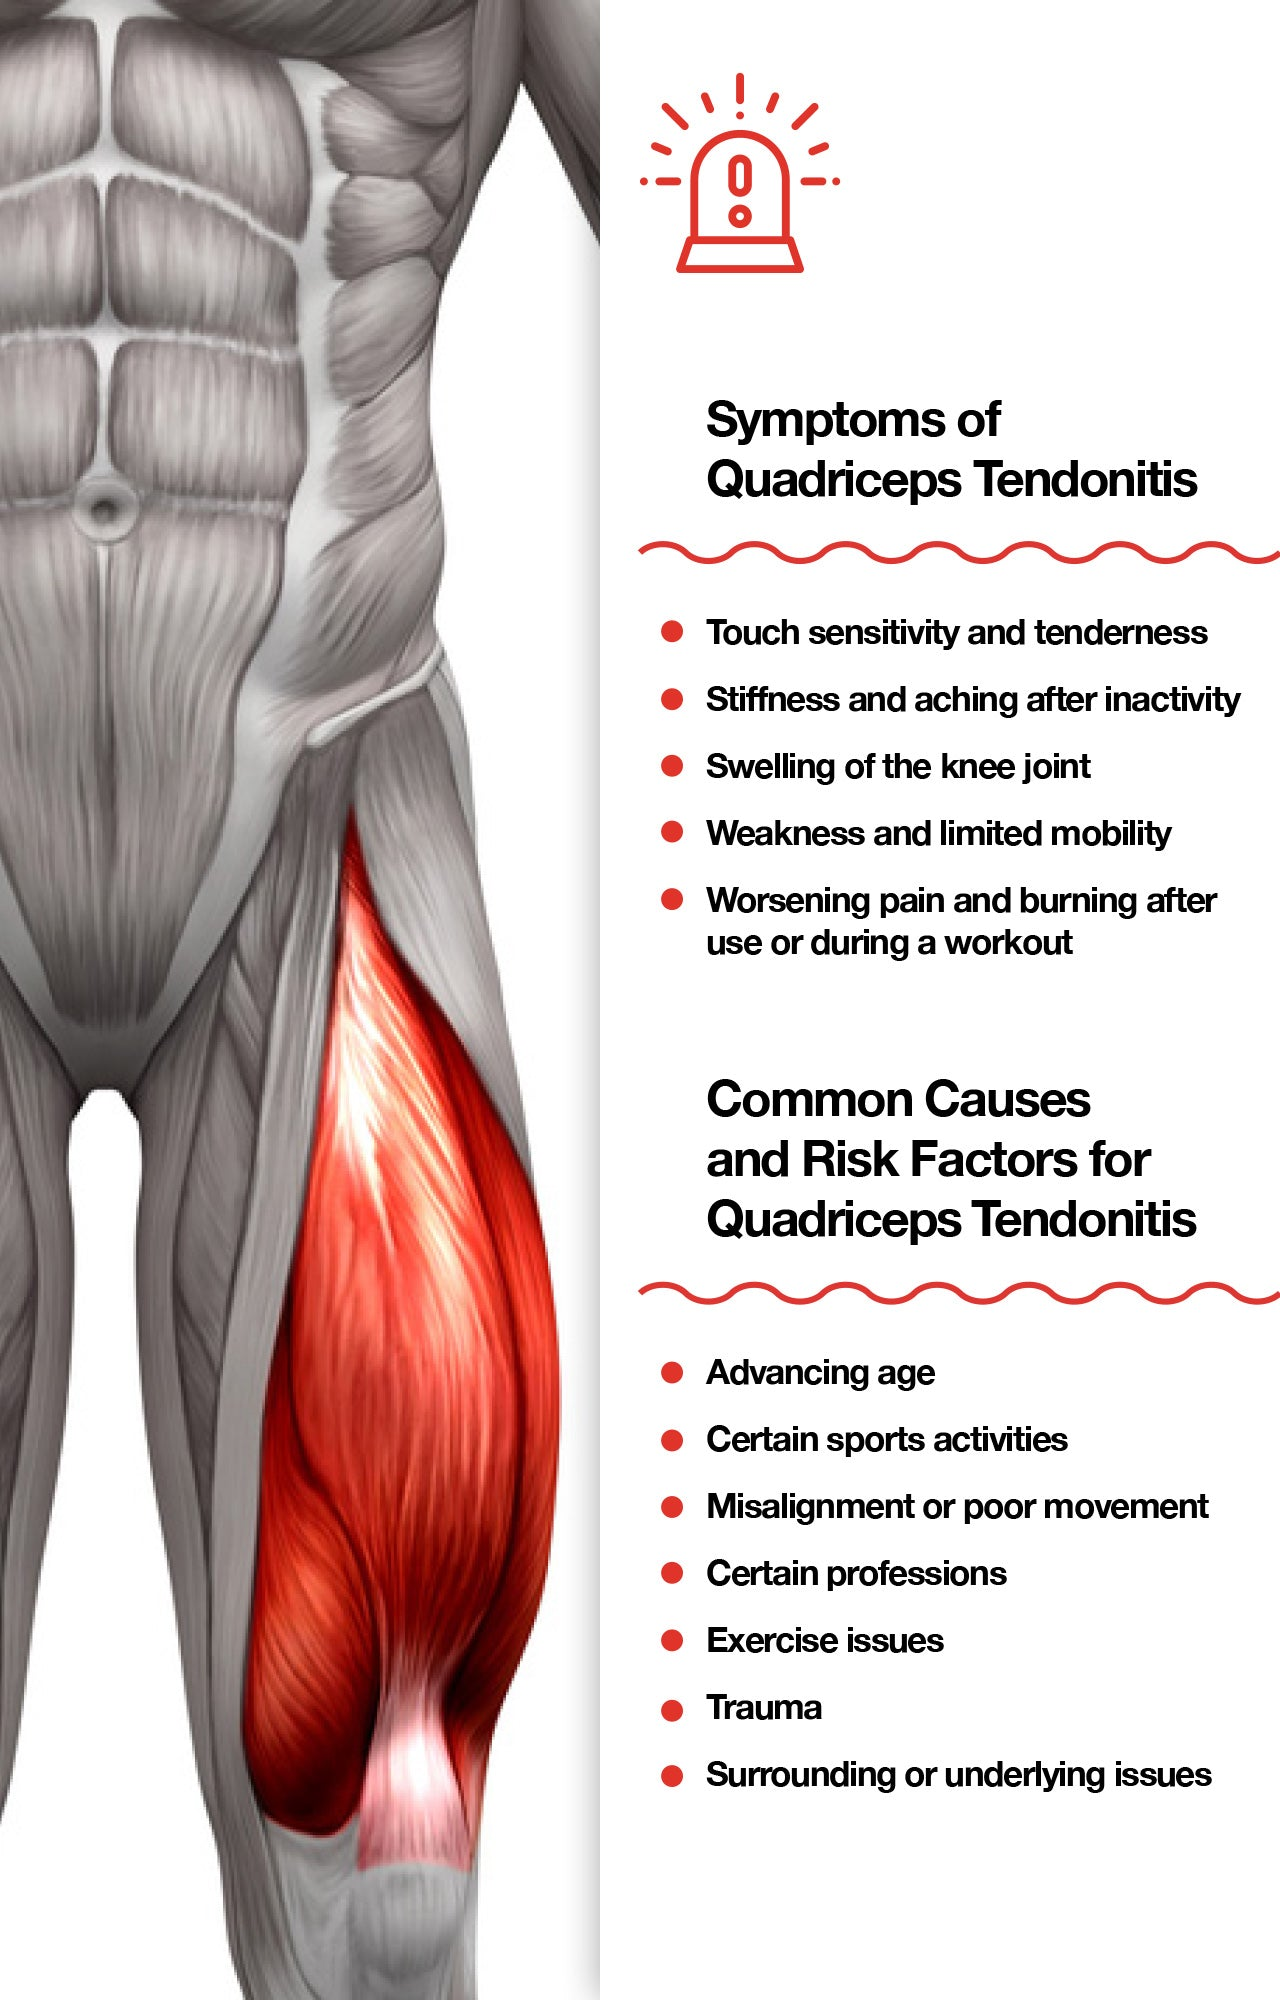 Symptoms, Causes and Risk Factors for Quadriceps Tendonitis